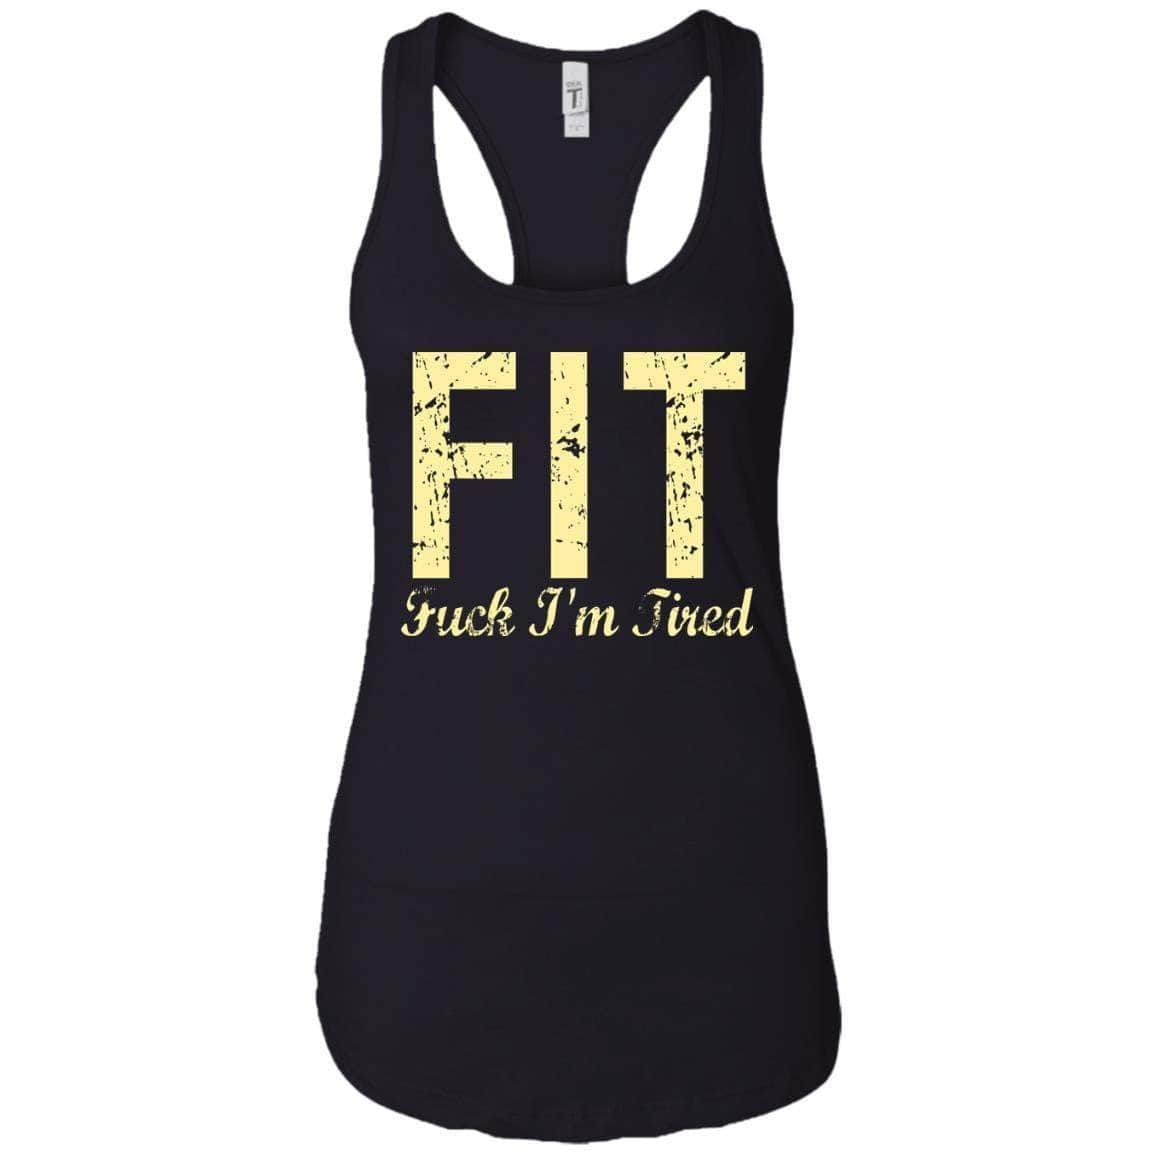 FUCK I'M TIRED WOMEN'S RACERBACK TANK